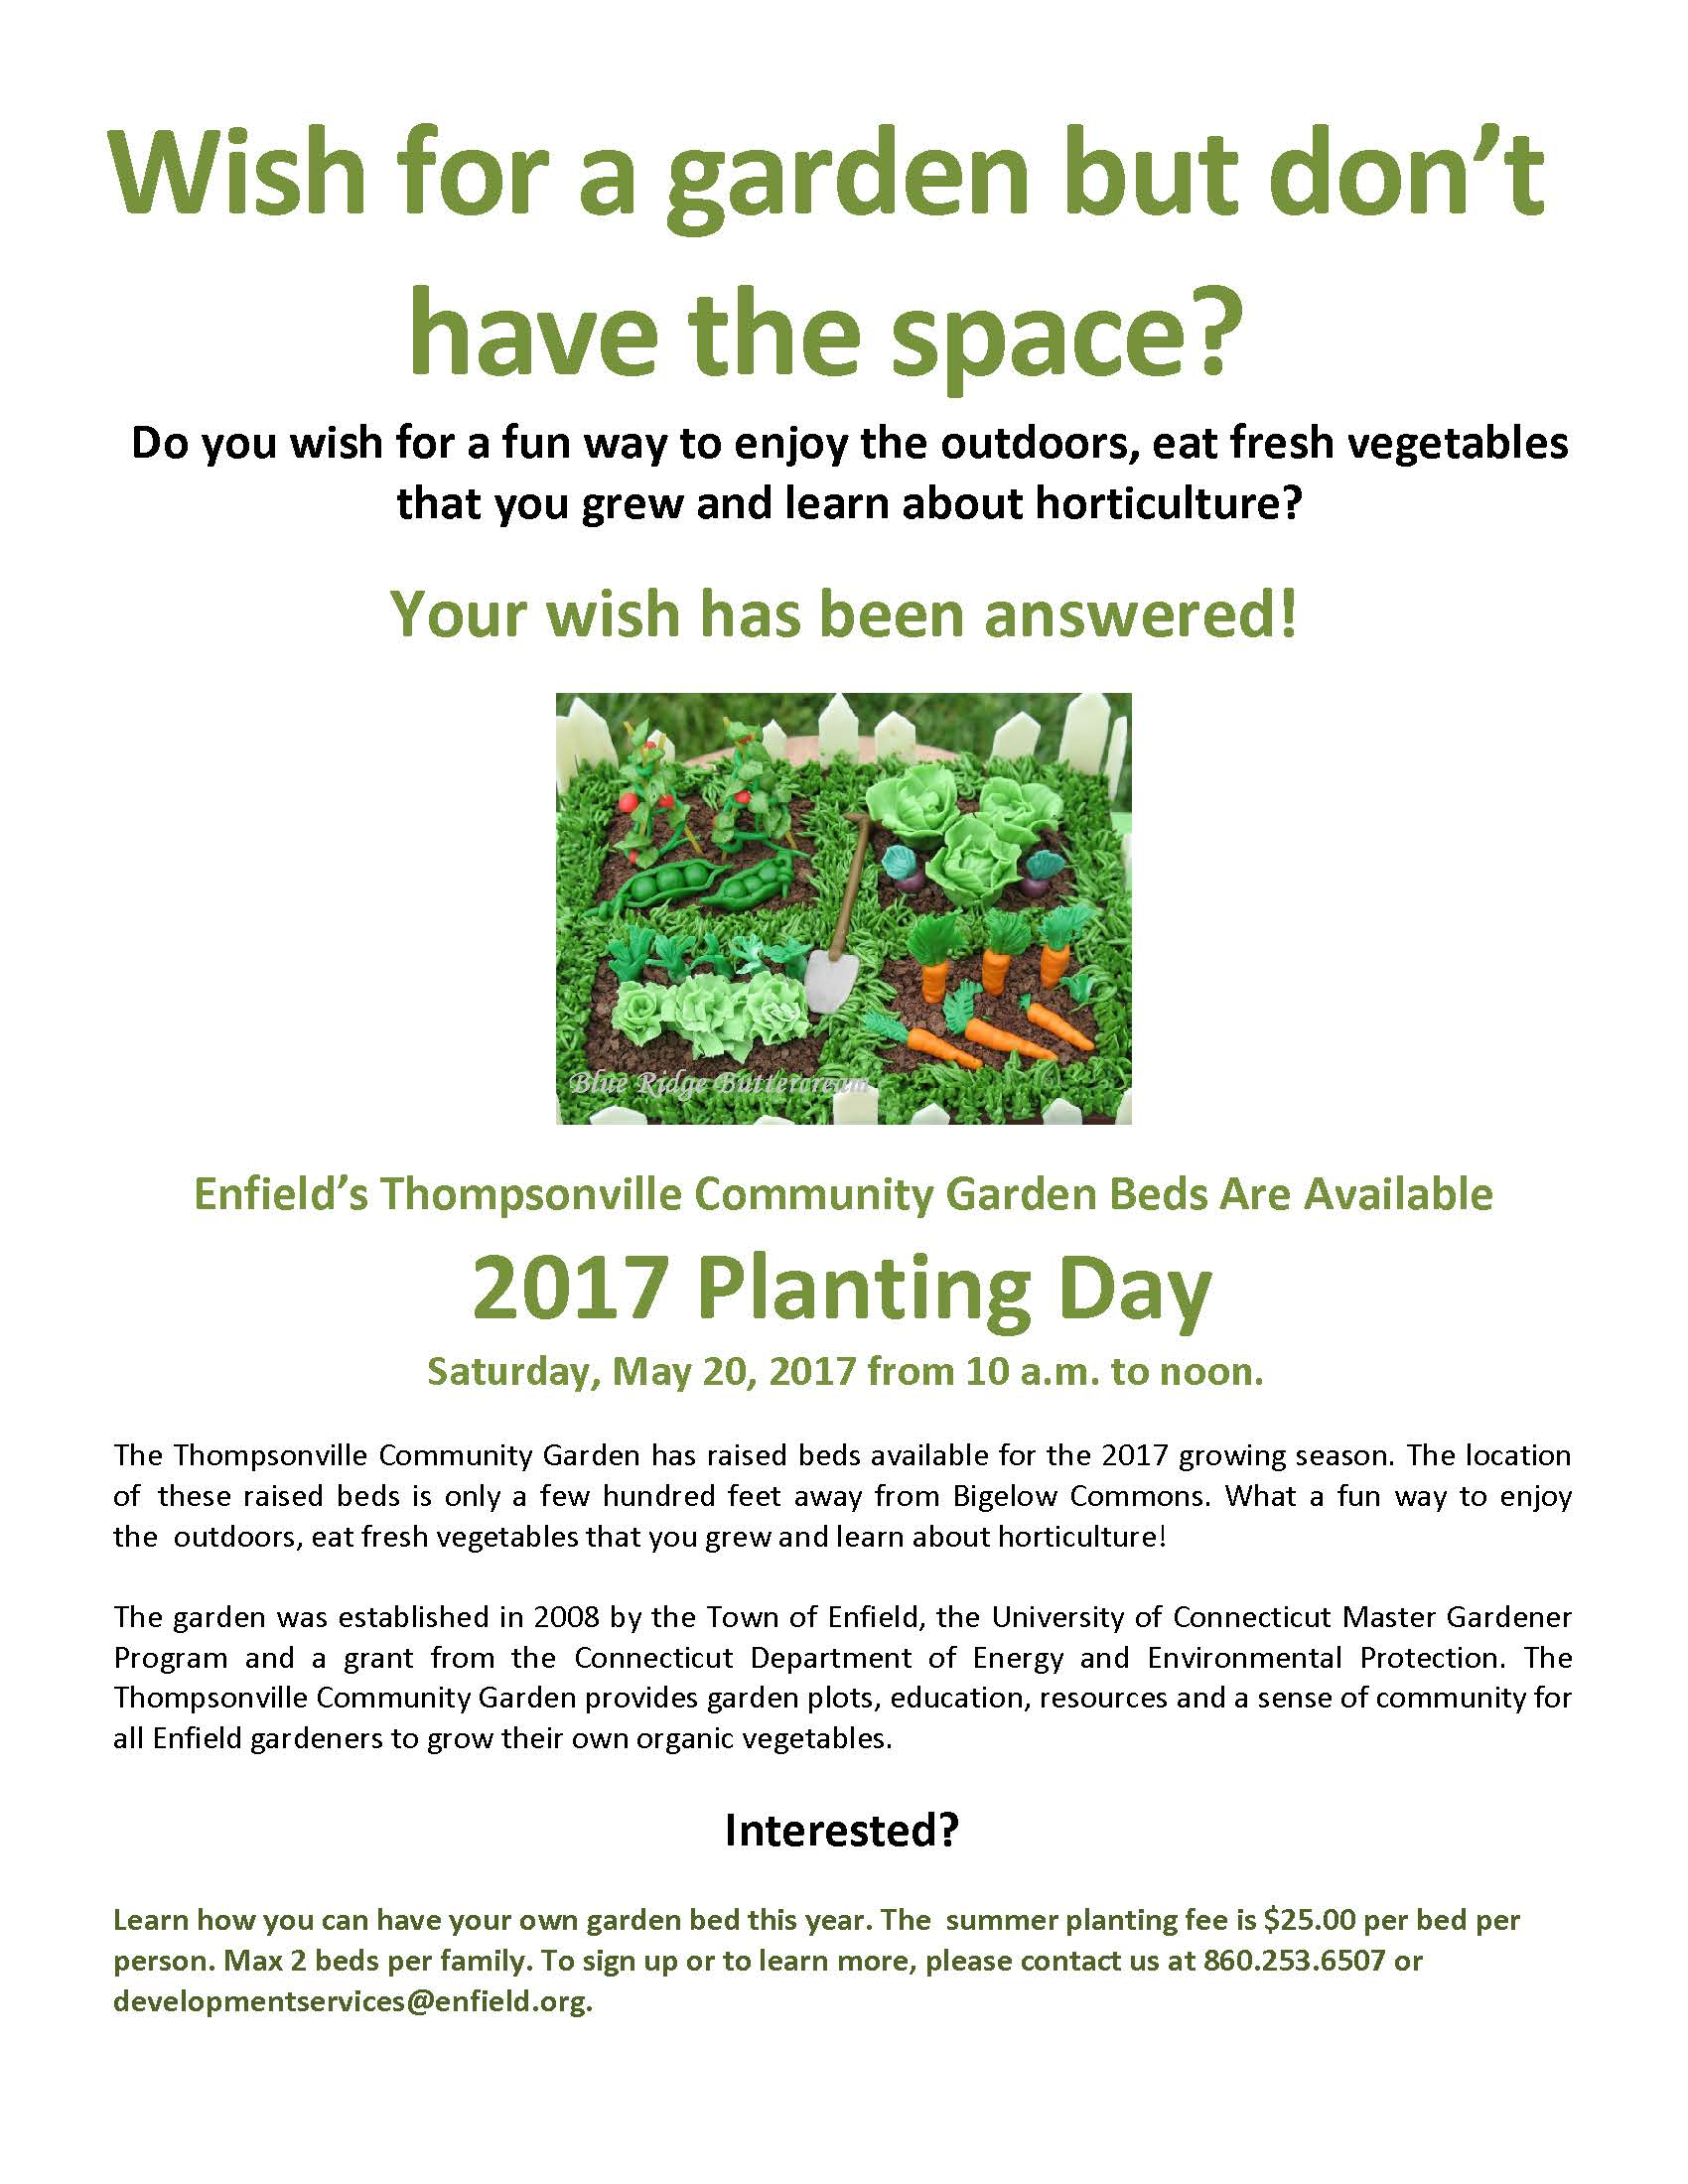 Planting Day Flyer Thompsonville Community Garden Beds Welcome (00000002)